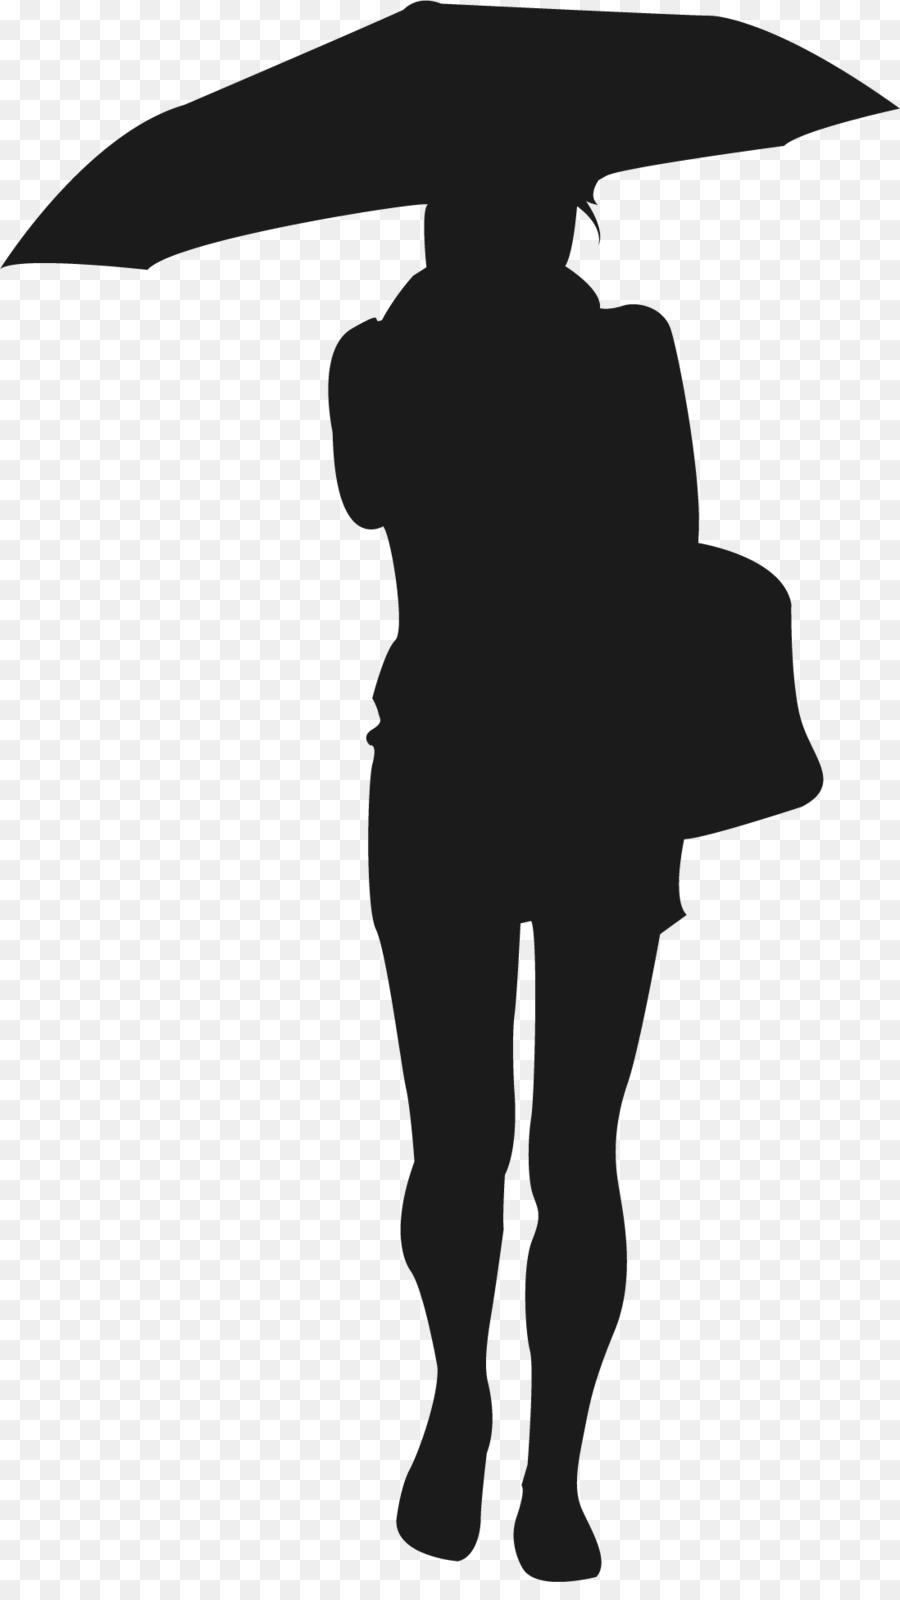 900x1600 Silhouette Scalable Vector Graphics Woman Icon